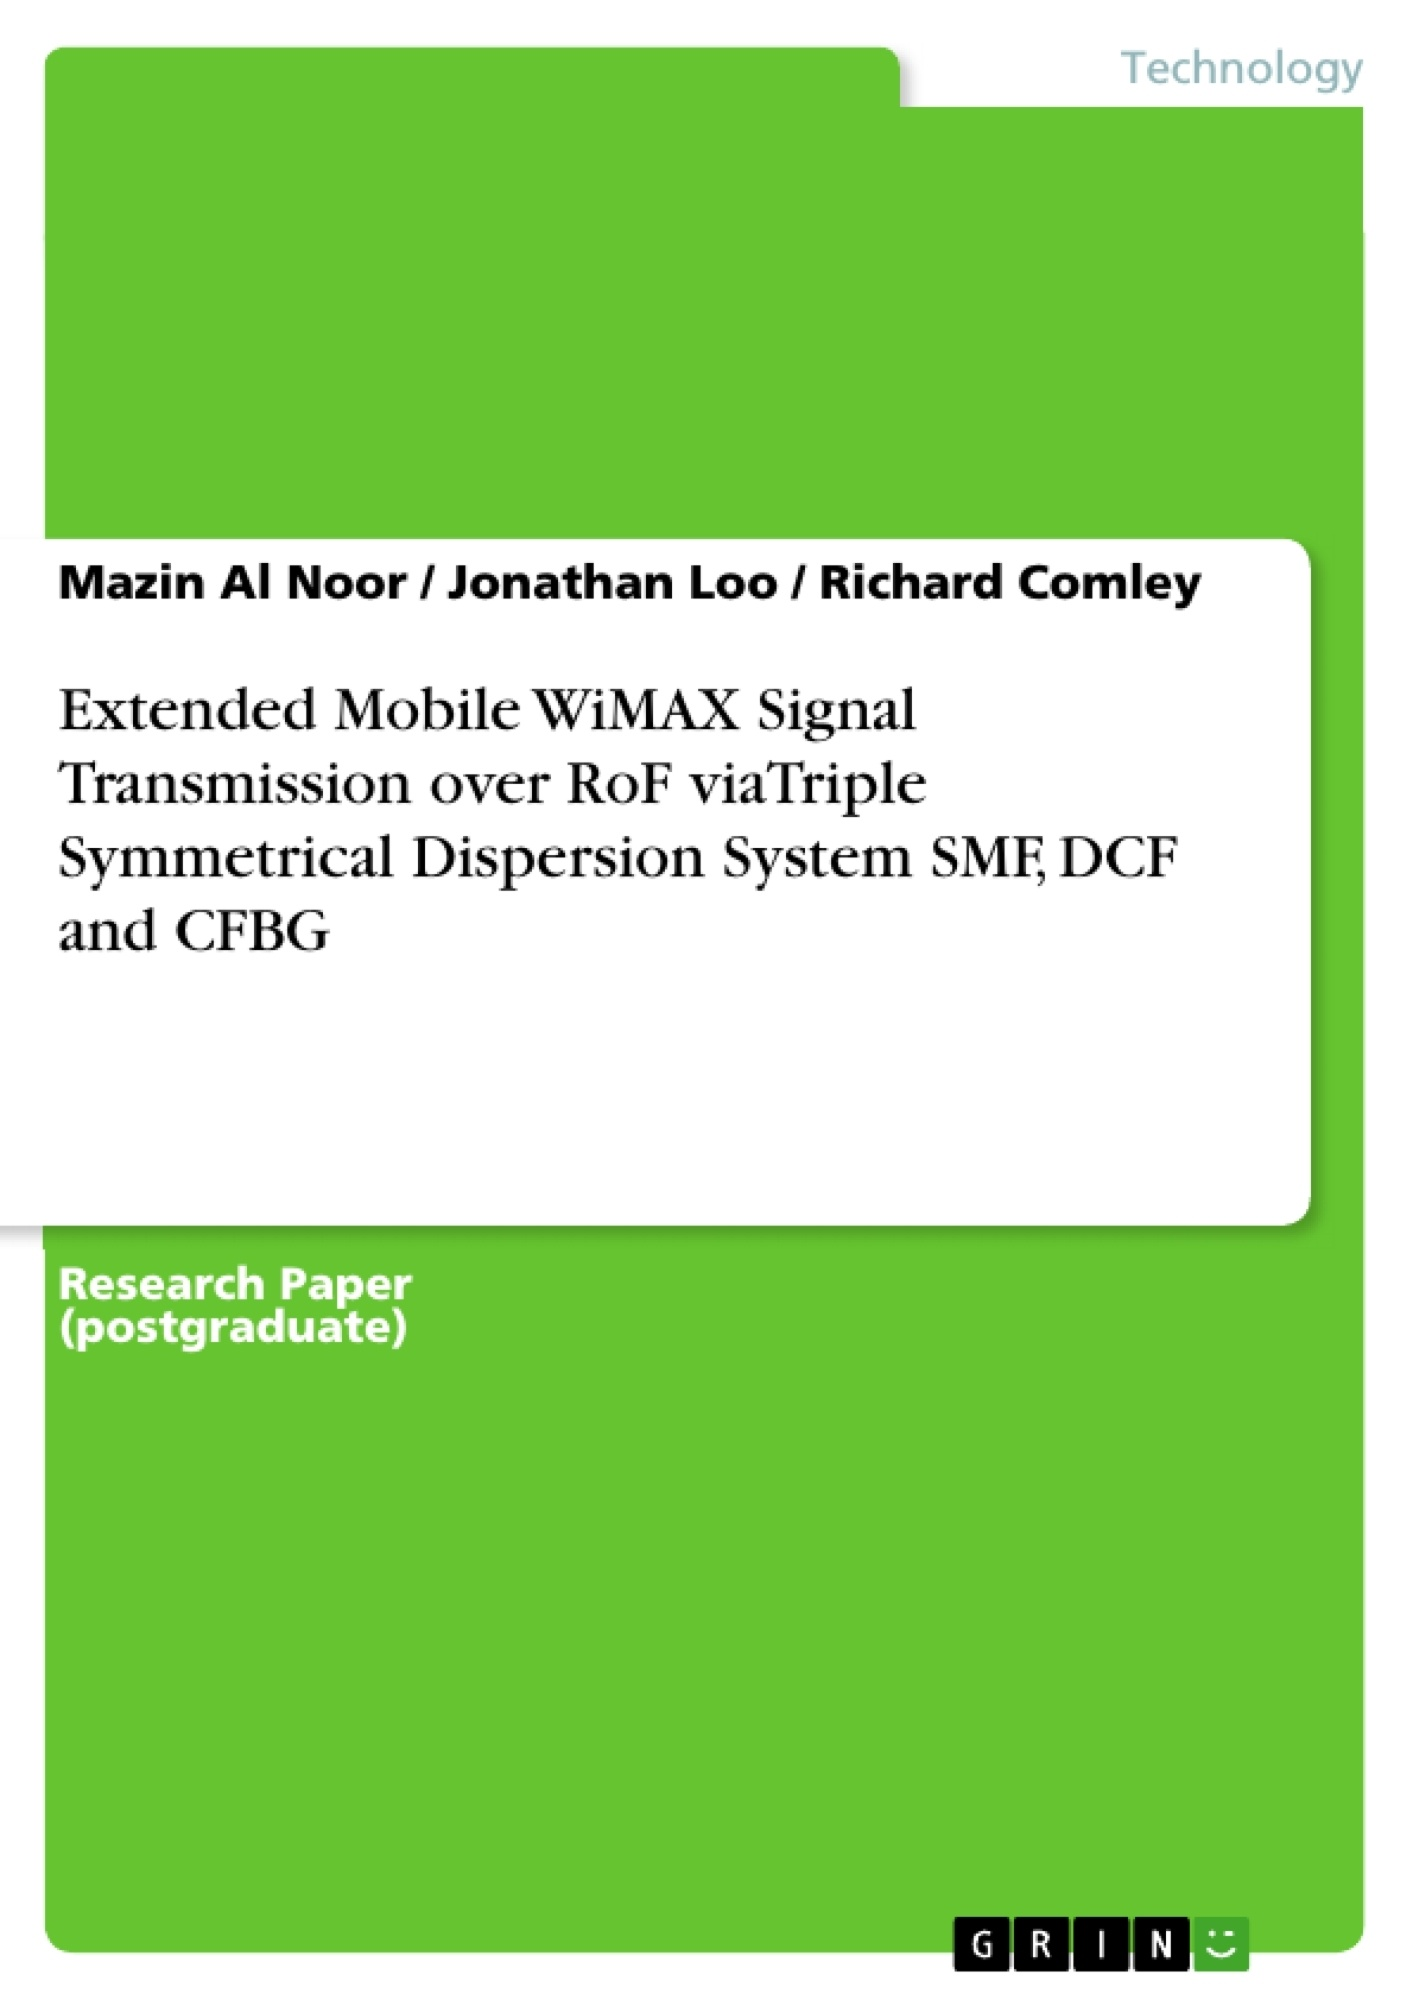 Title: Extended Mobile WiMAX Signal Transmission over RoF viaTriple Symmetrical Dispersion System SMF, DCF and CFBG